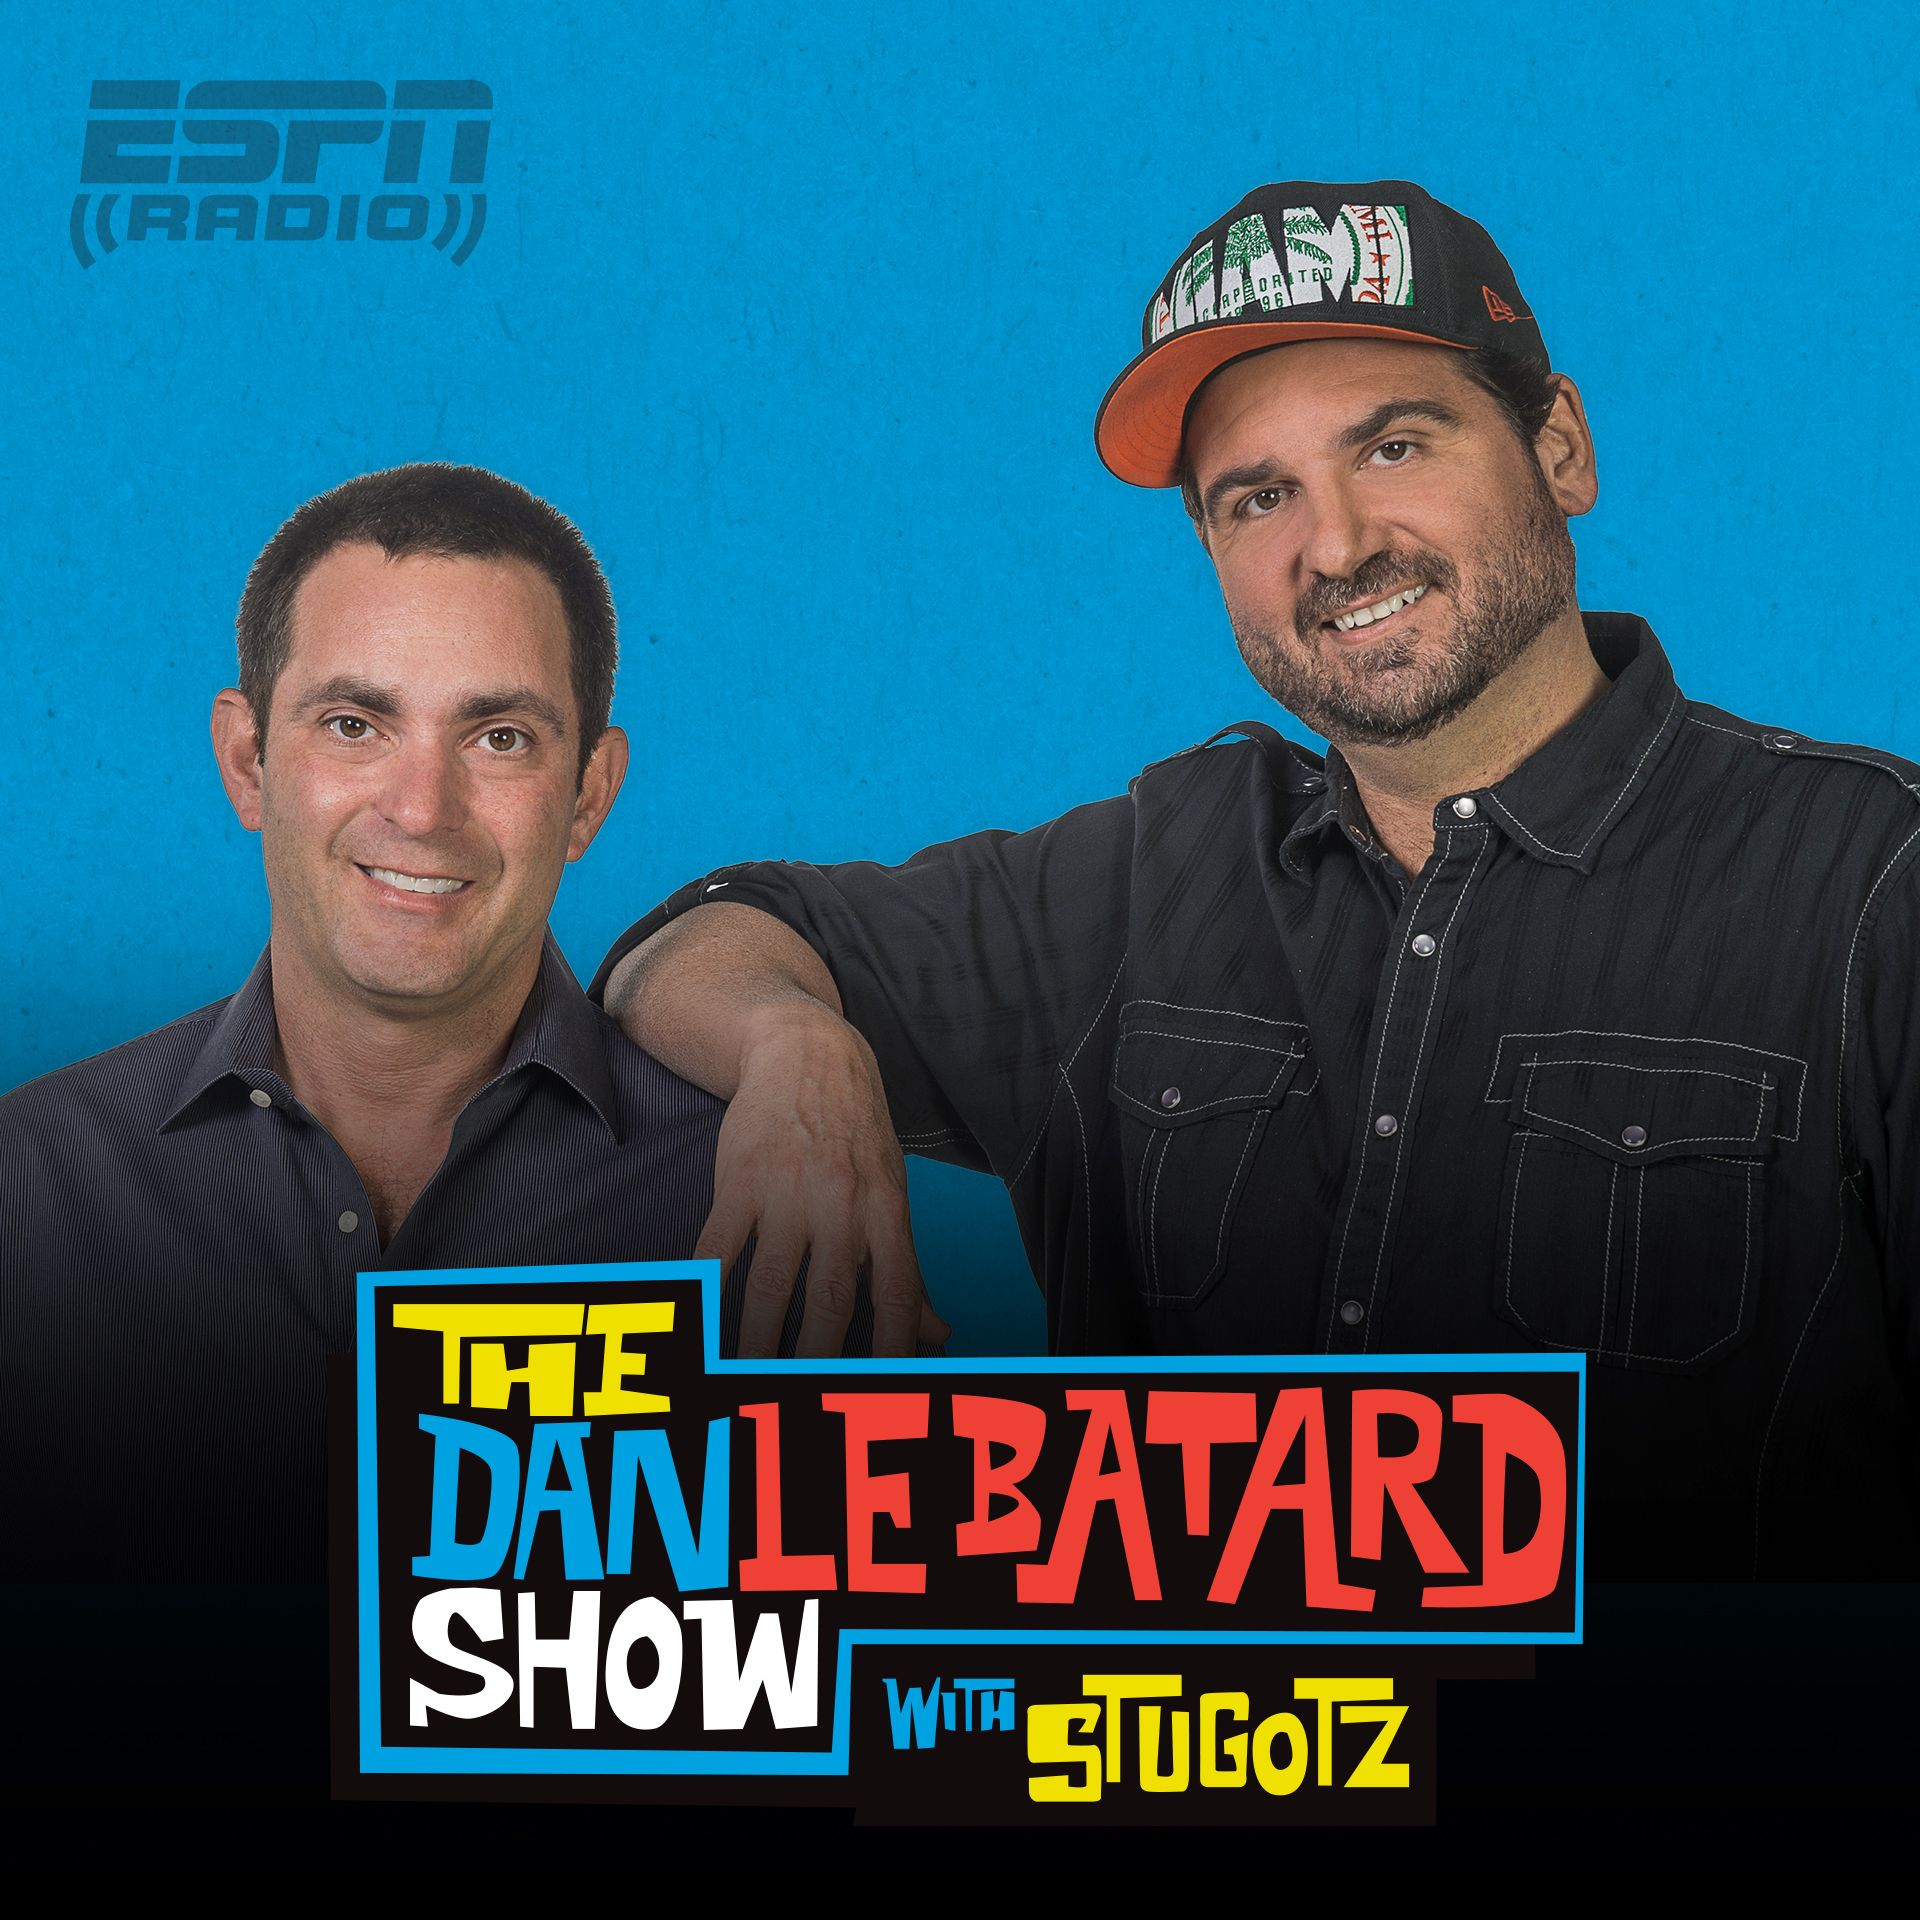 The Dan Le Batard Show with Stugotz